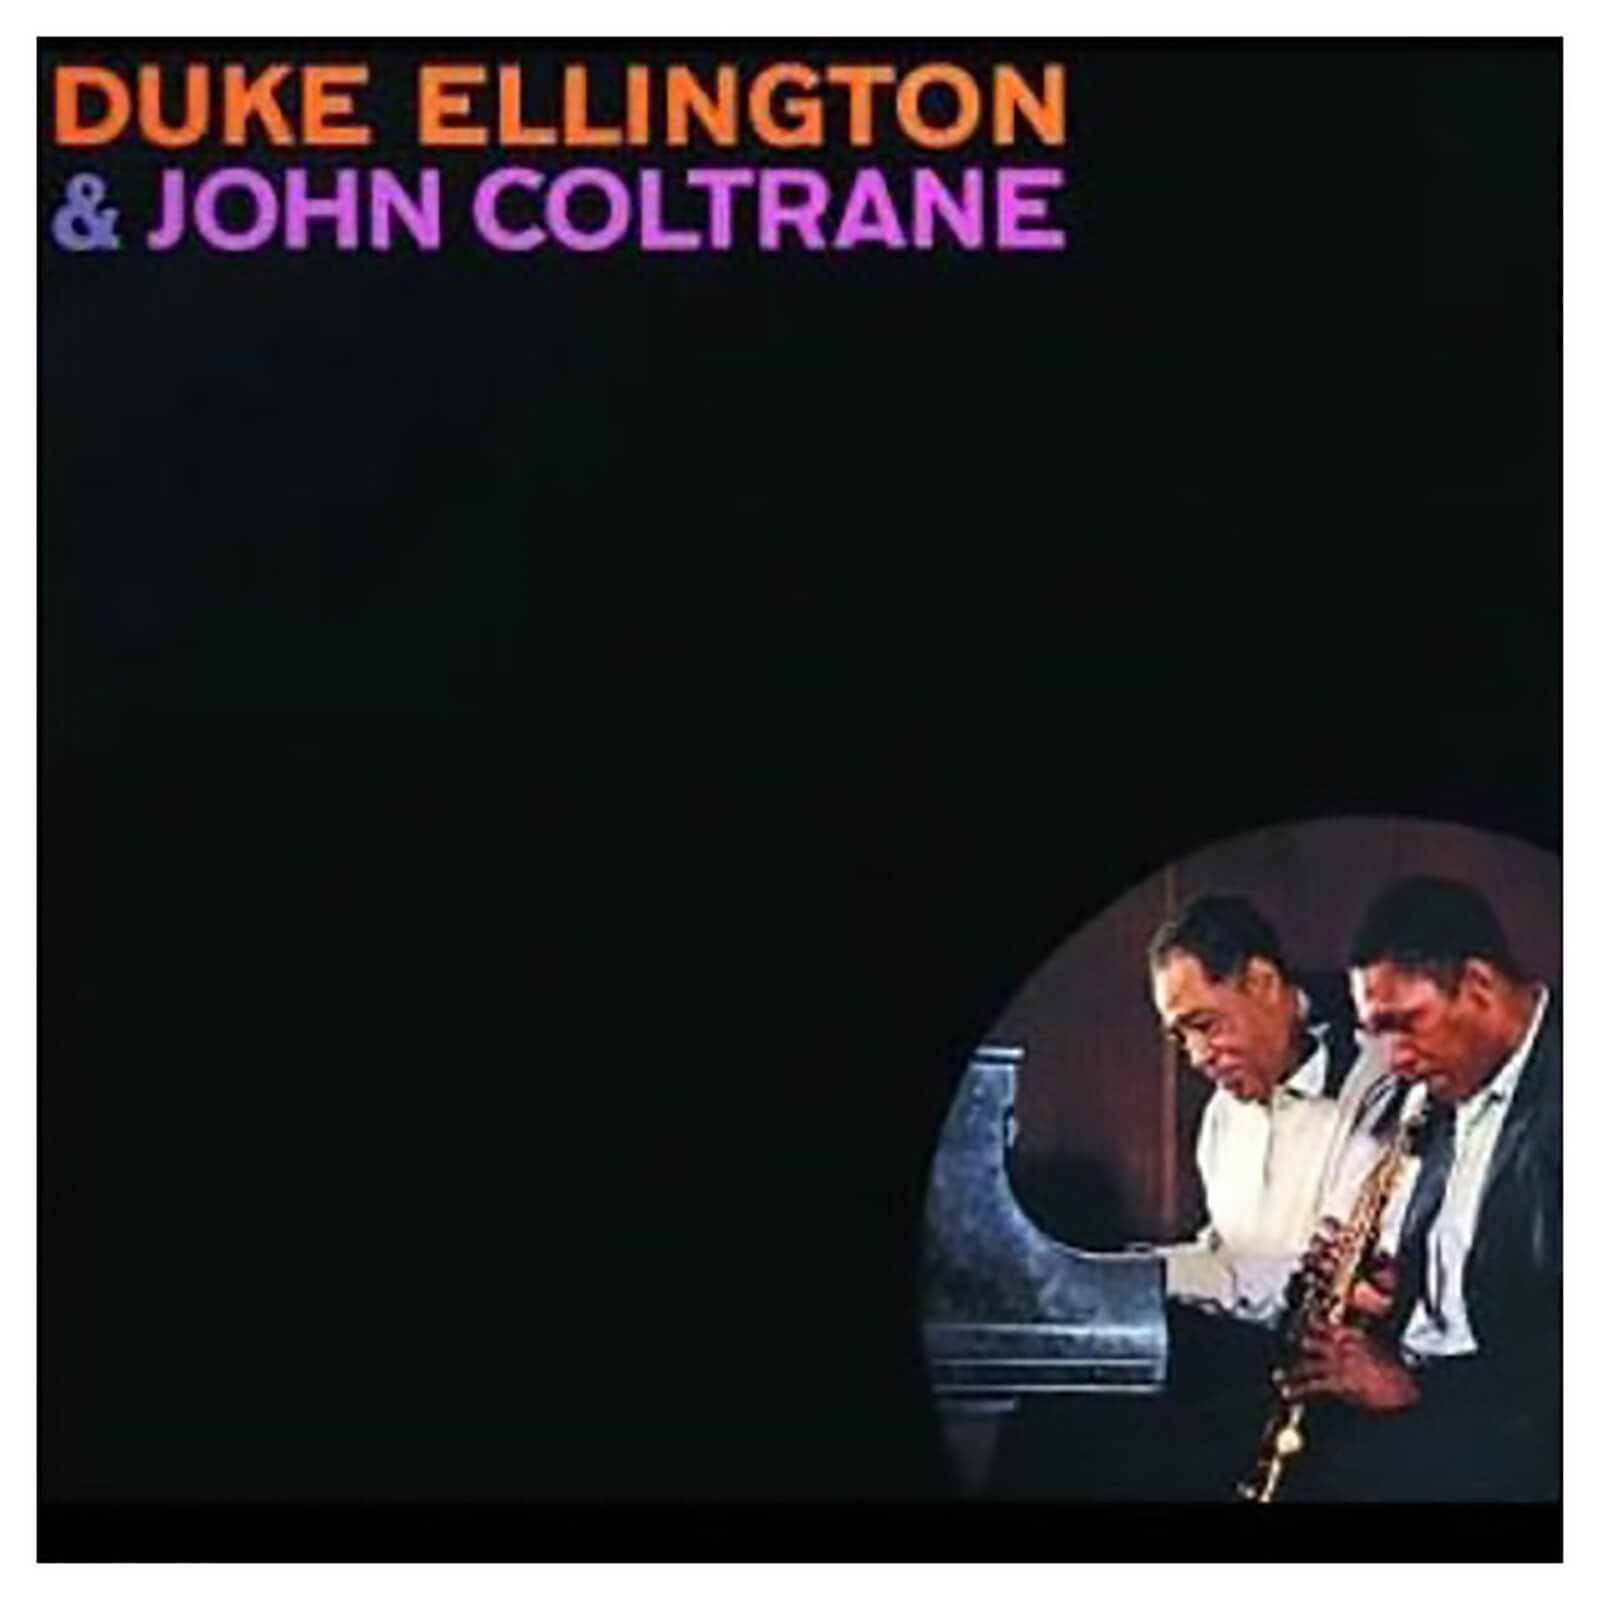 Duke Ellington / John Coltrane - Ellington & Coltrane - Vinyl